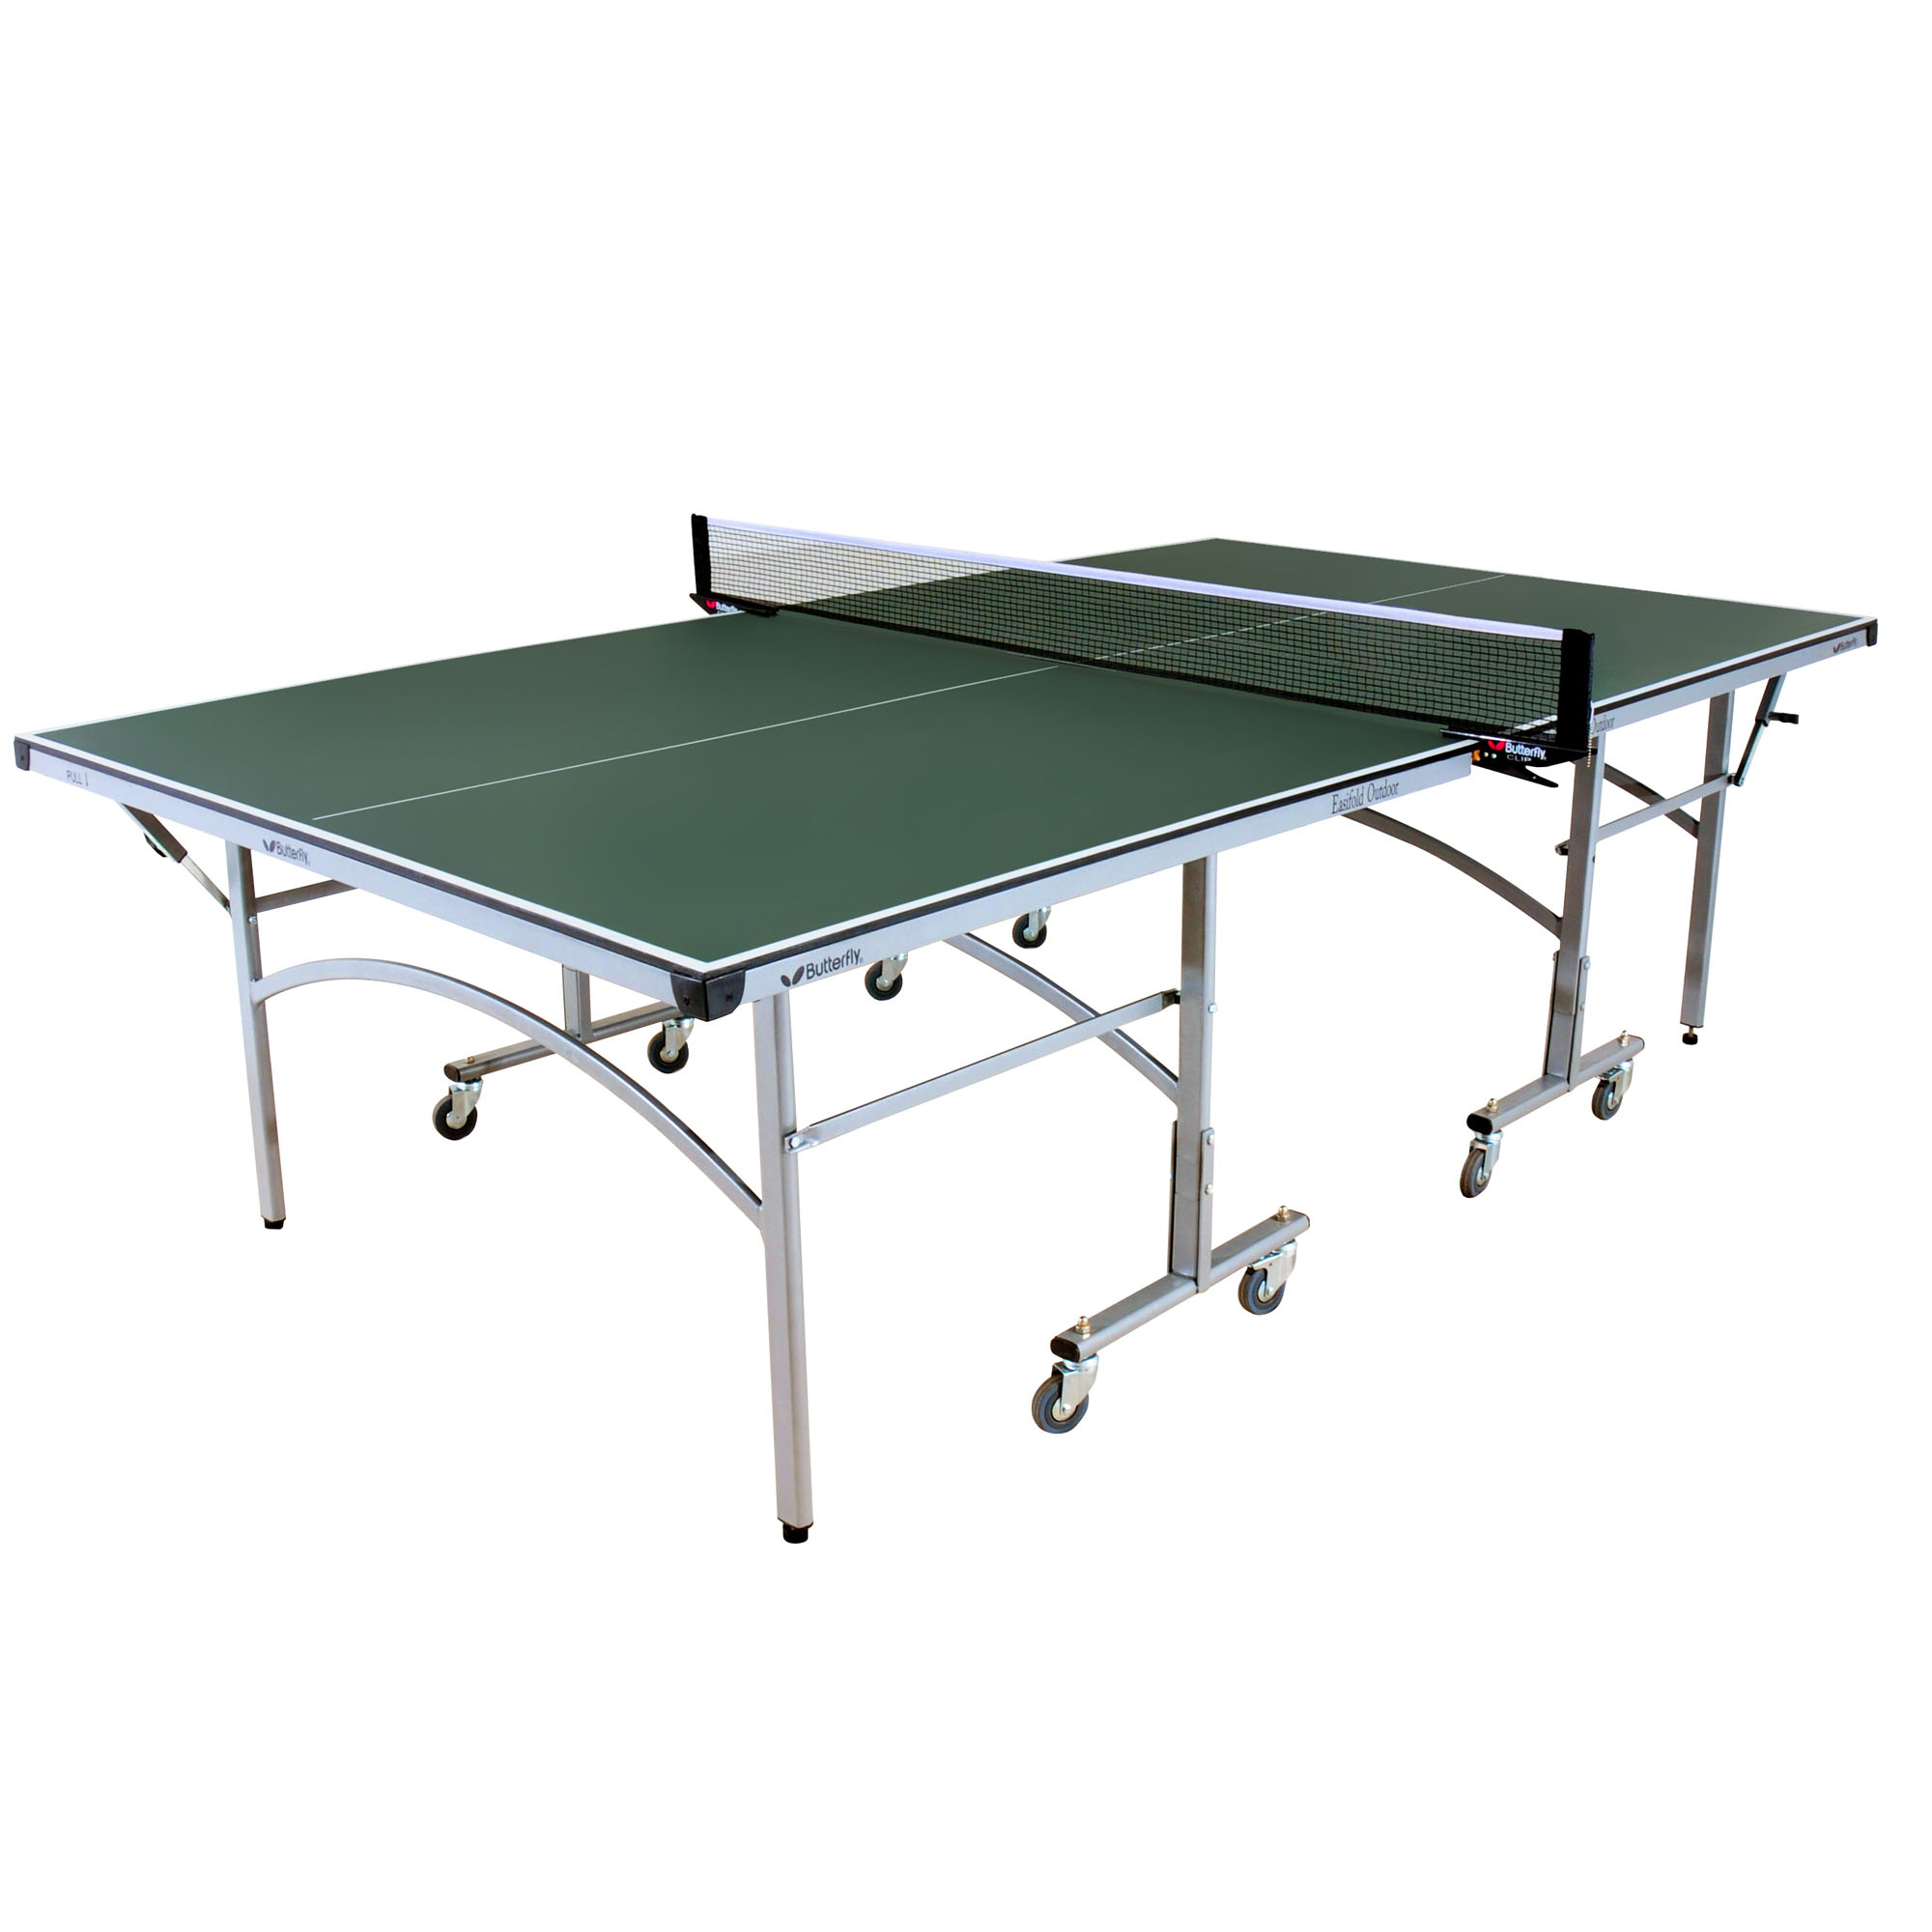 Outdoor table tennis table shop for cheap table tennis for Table tennis